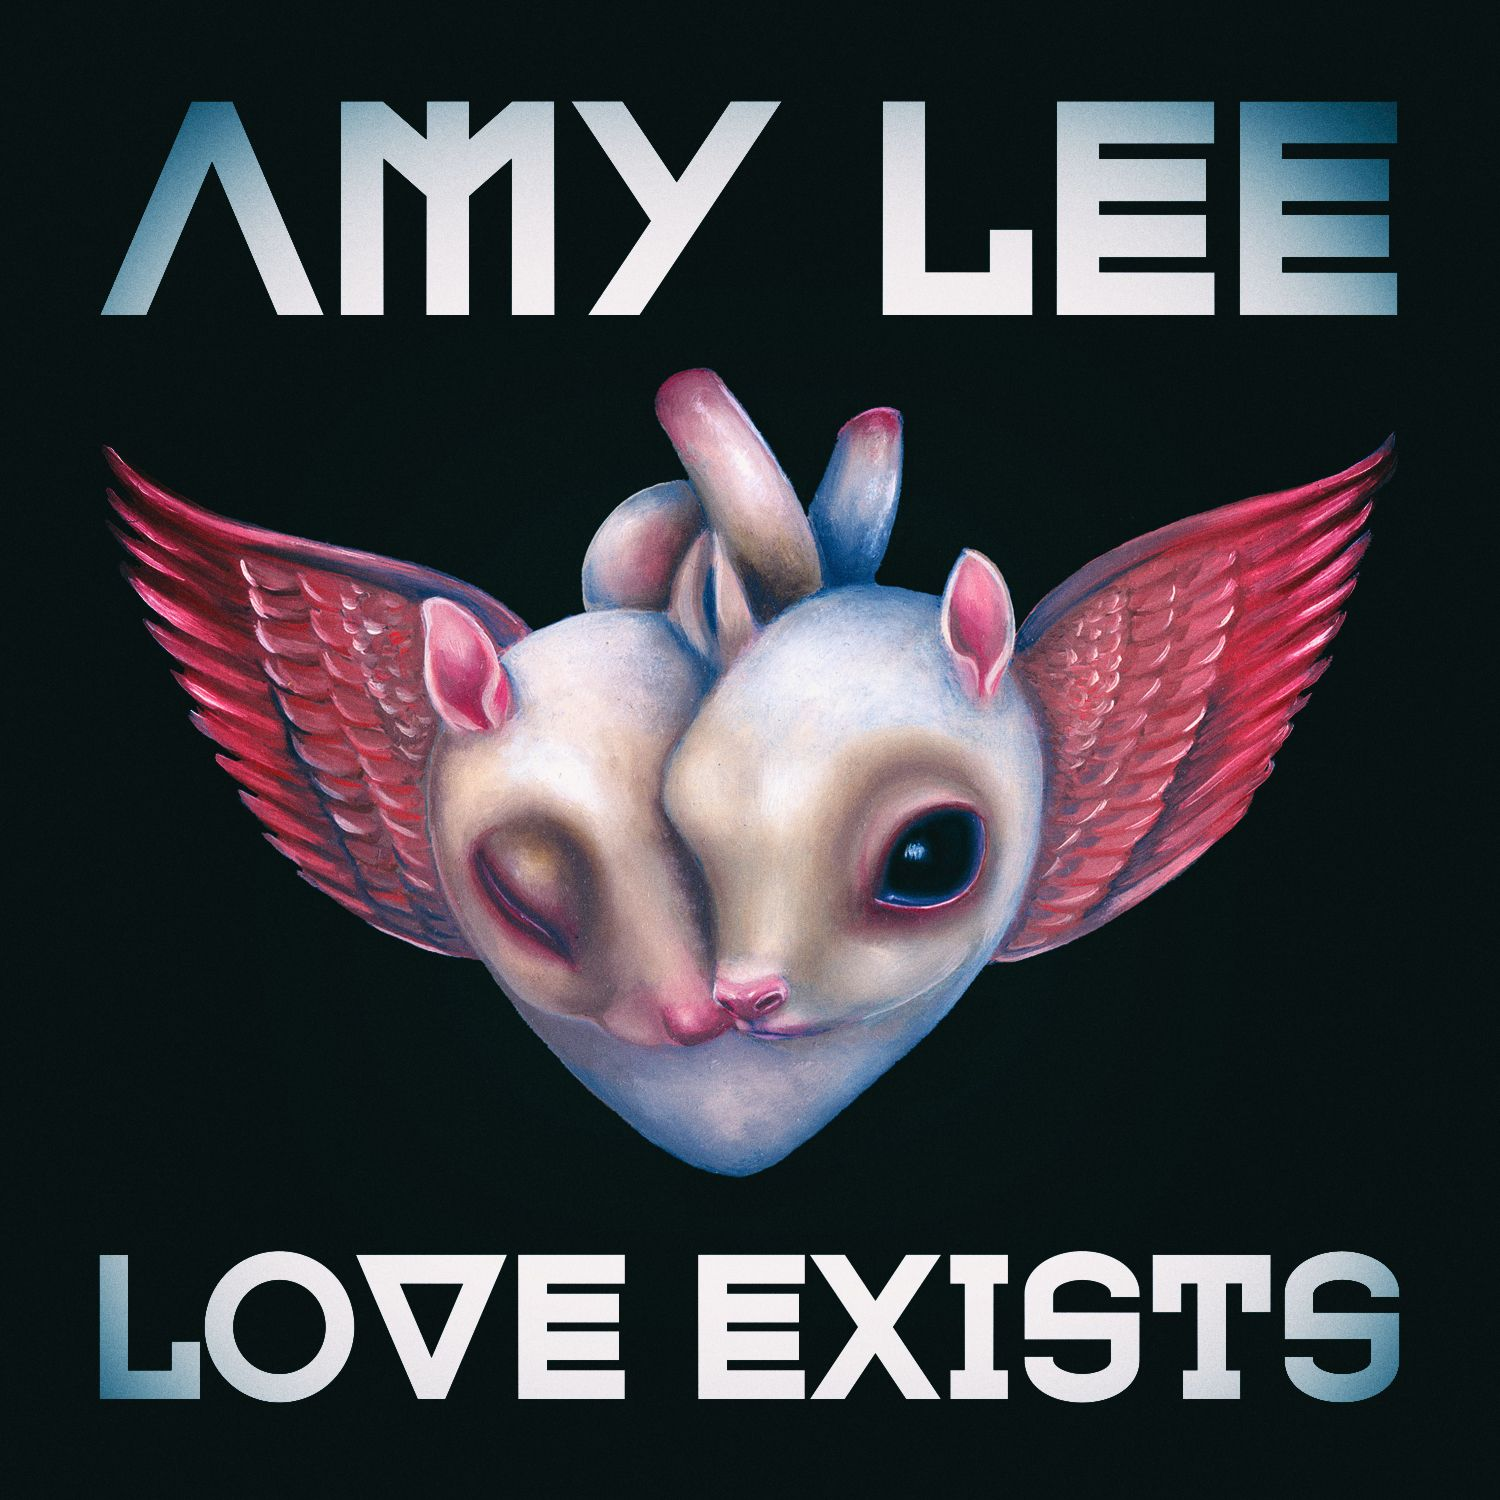 Love Exists (Single Cover)